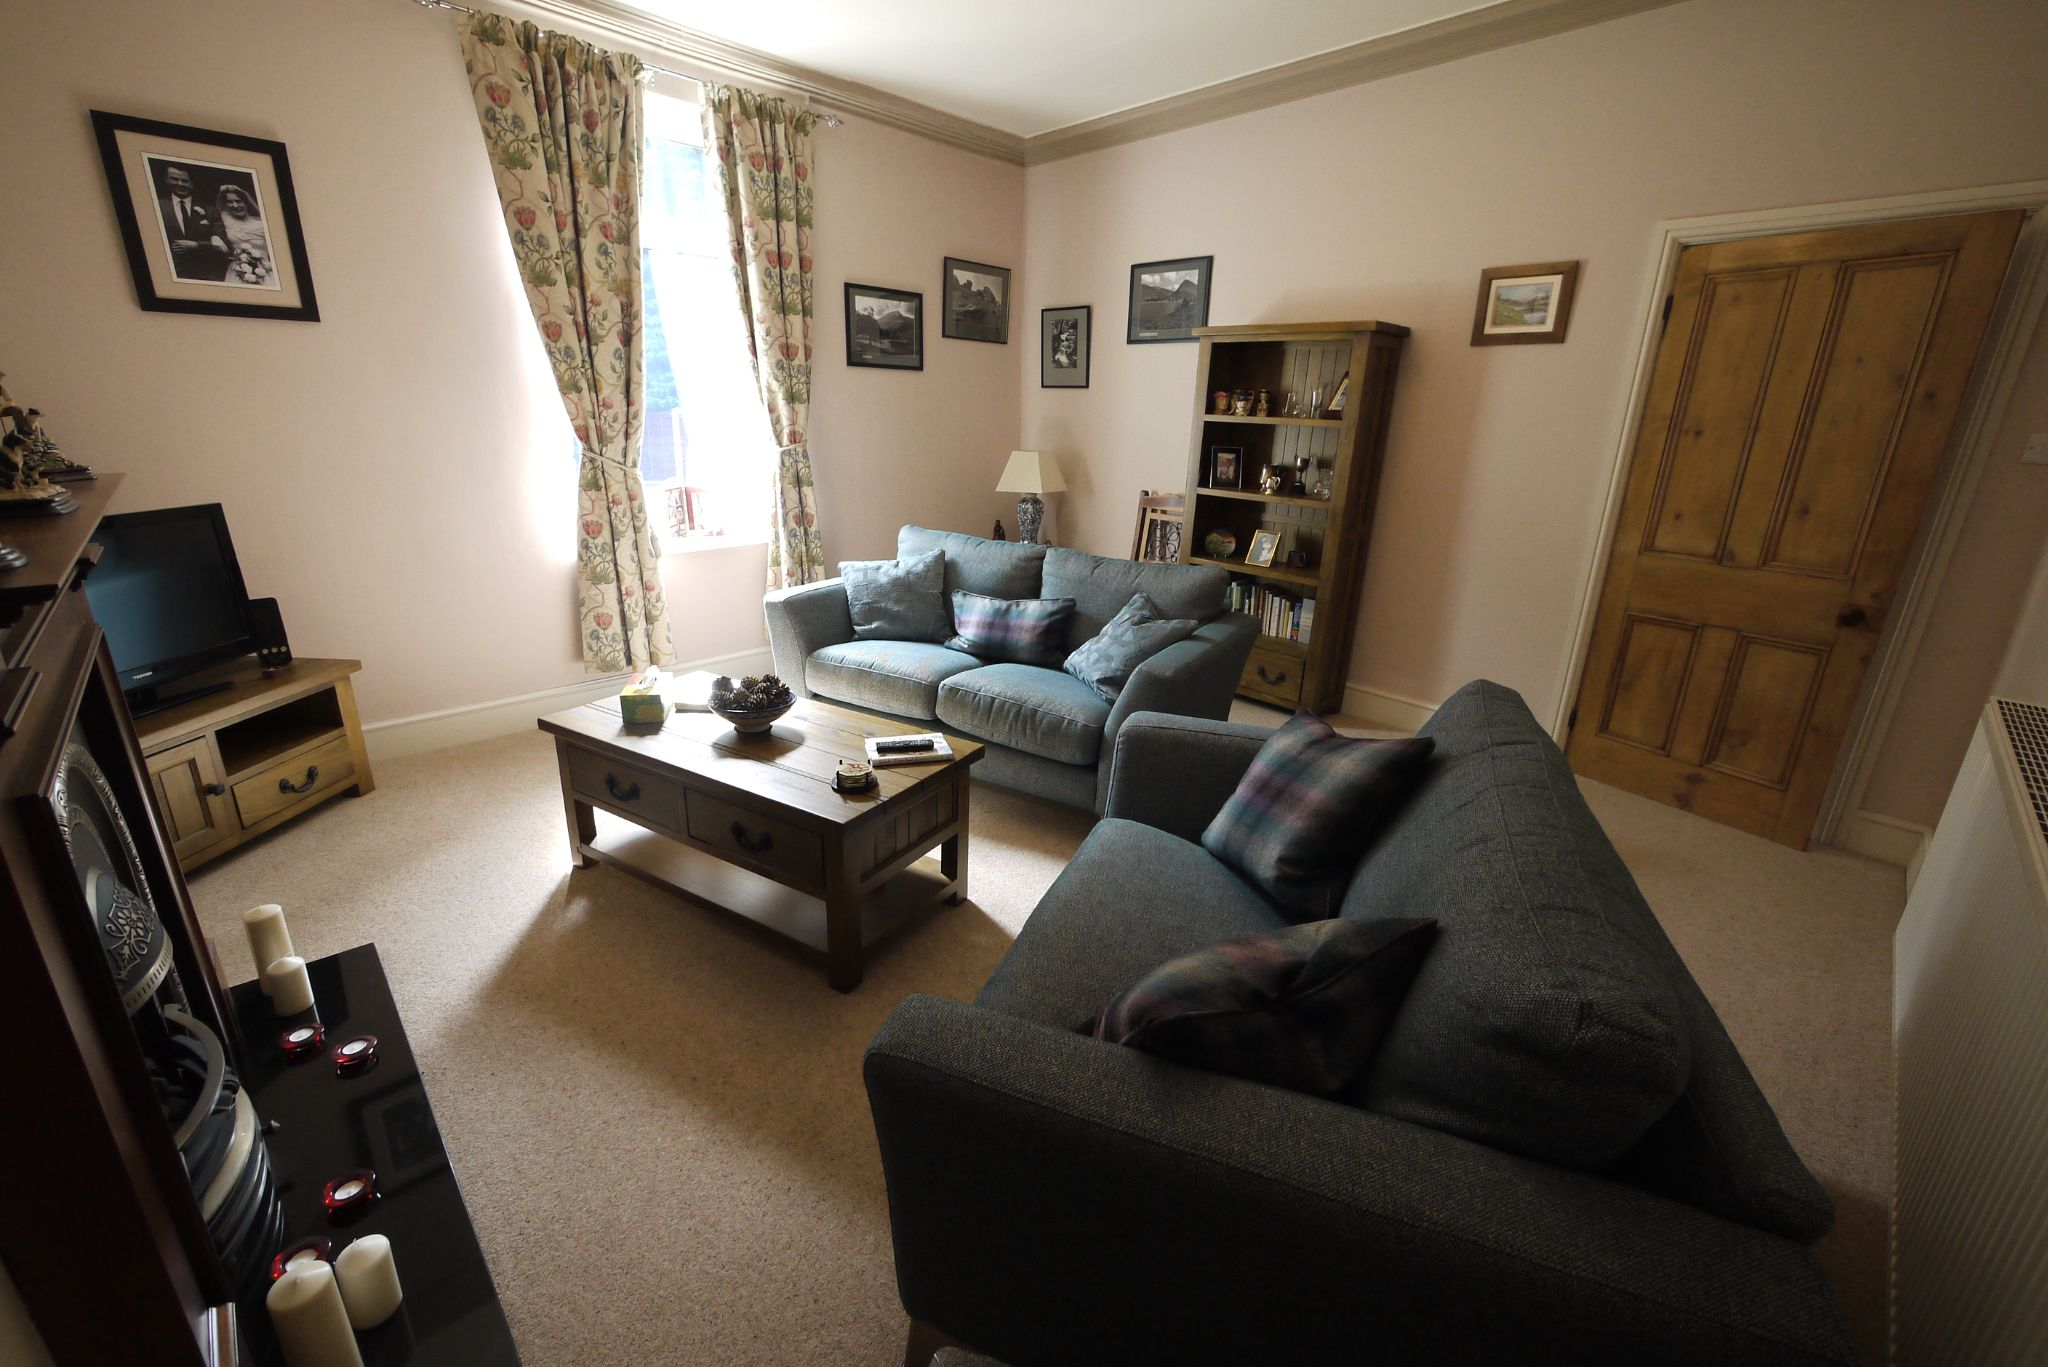 3 bedroom semi-detached house For Sale in Brighouse - Photograph 14.